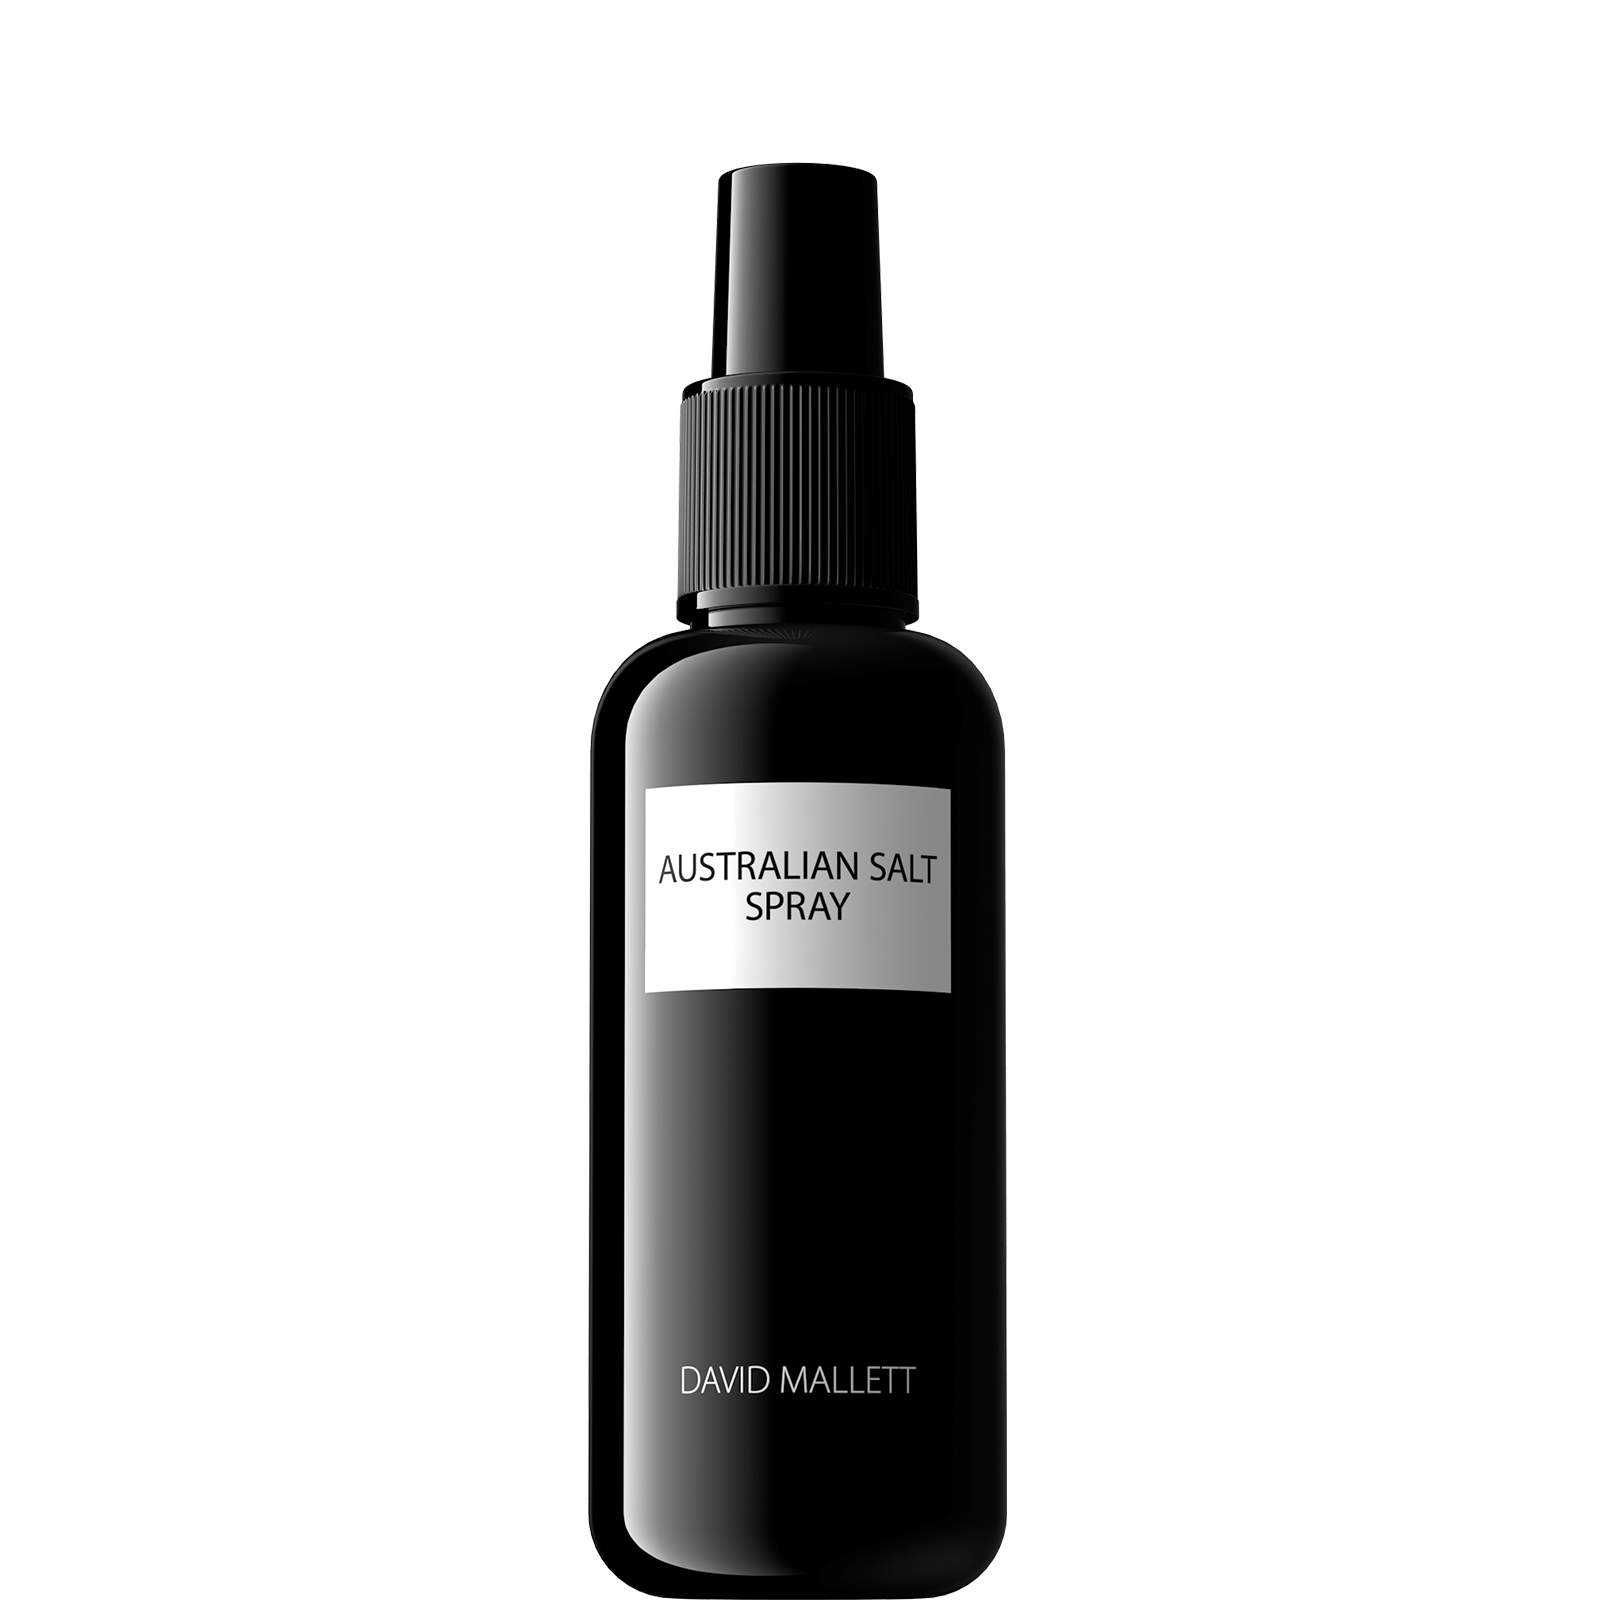 Image produit: Australian Salt Spray